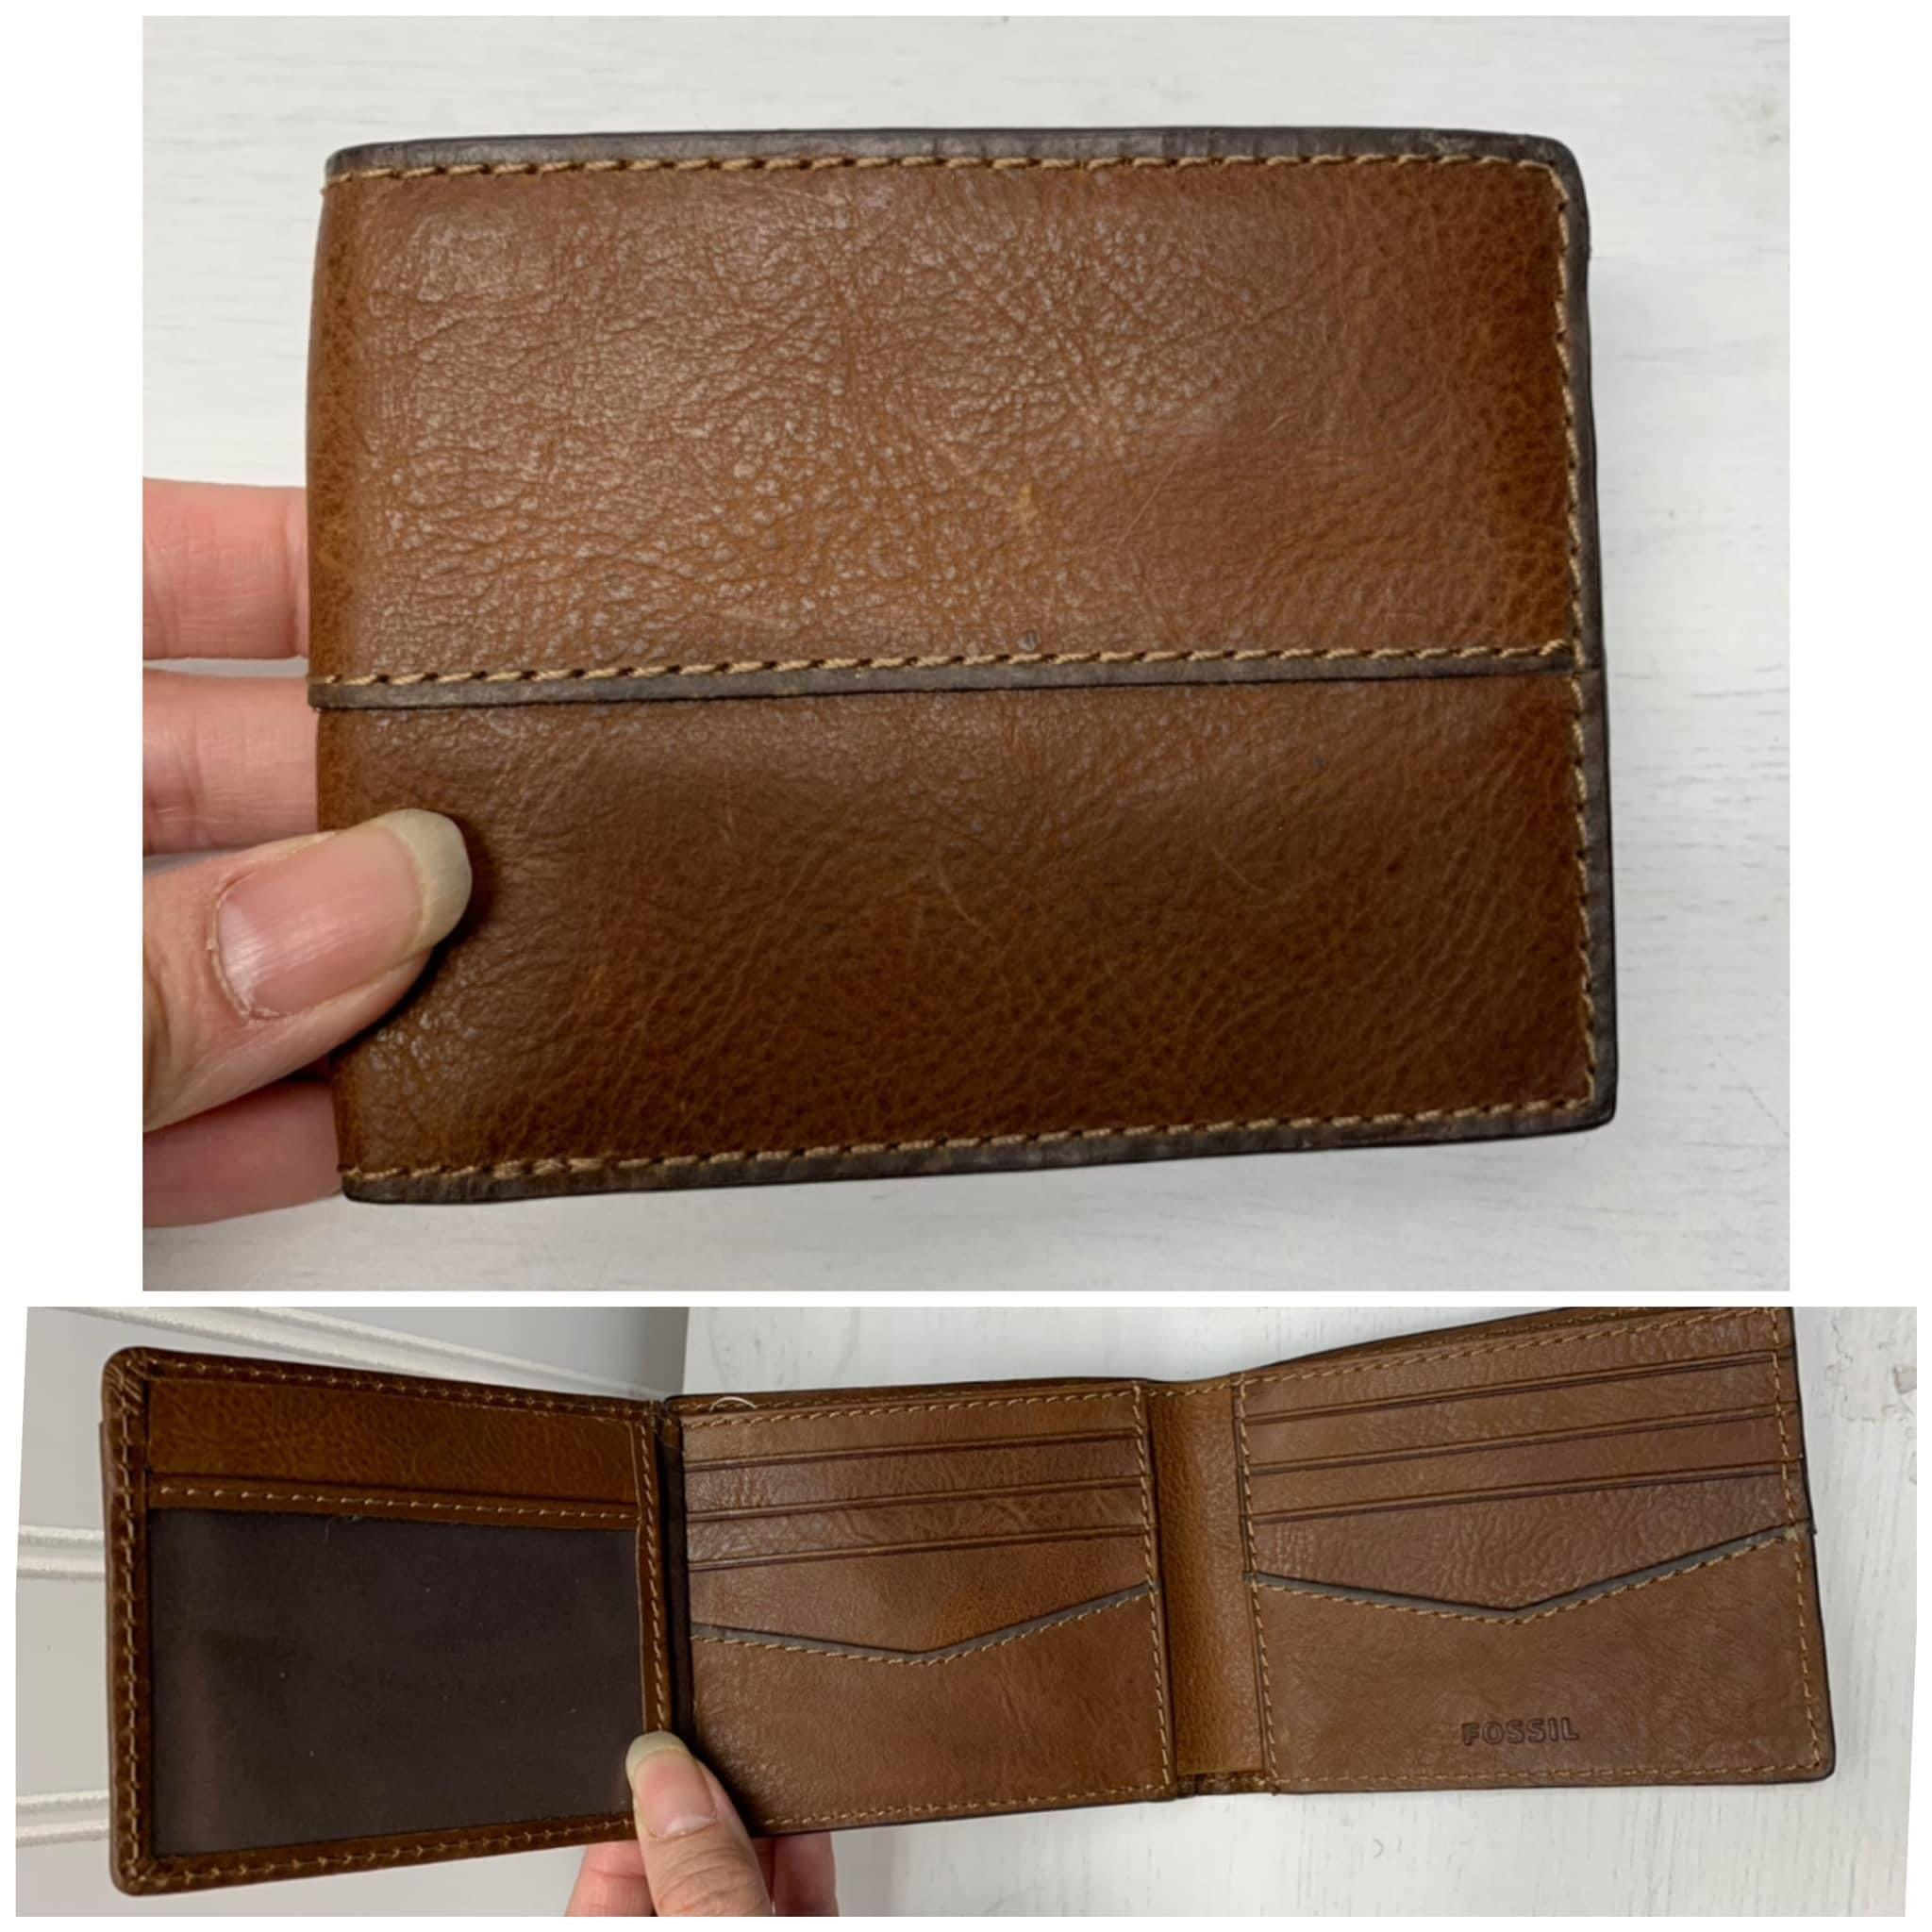 Dompet Fossil (no box)